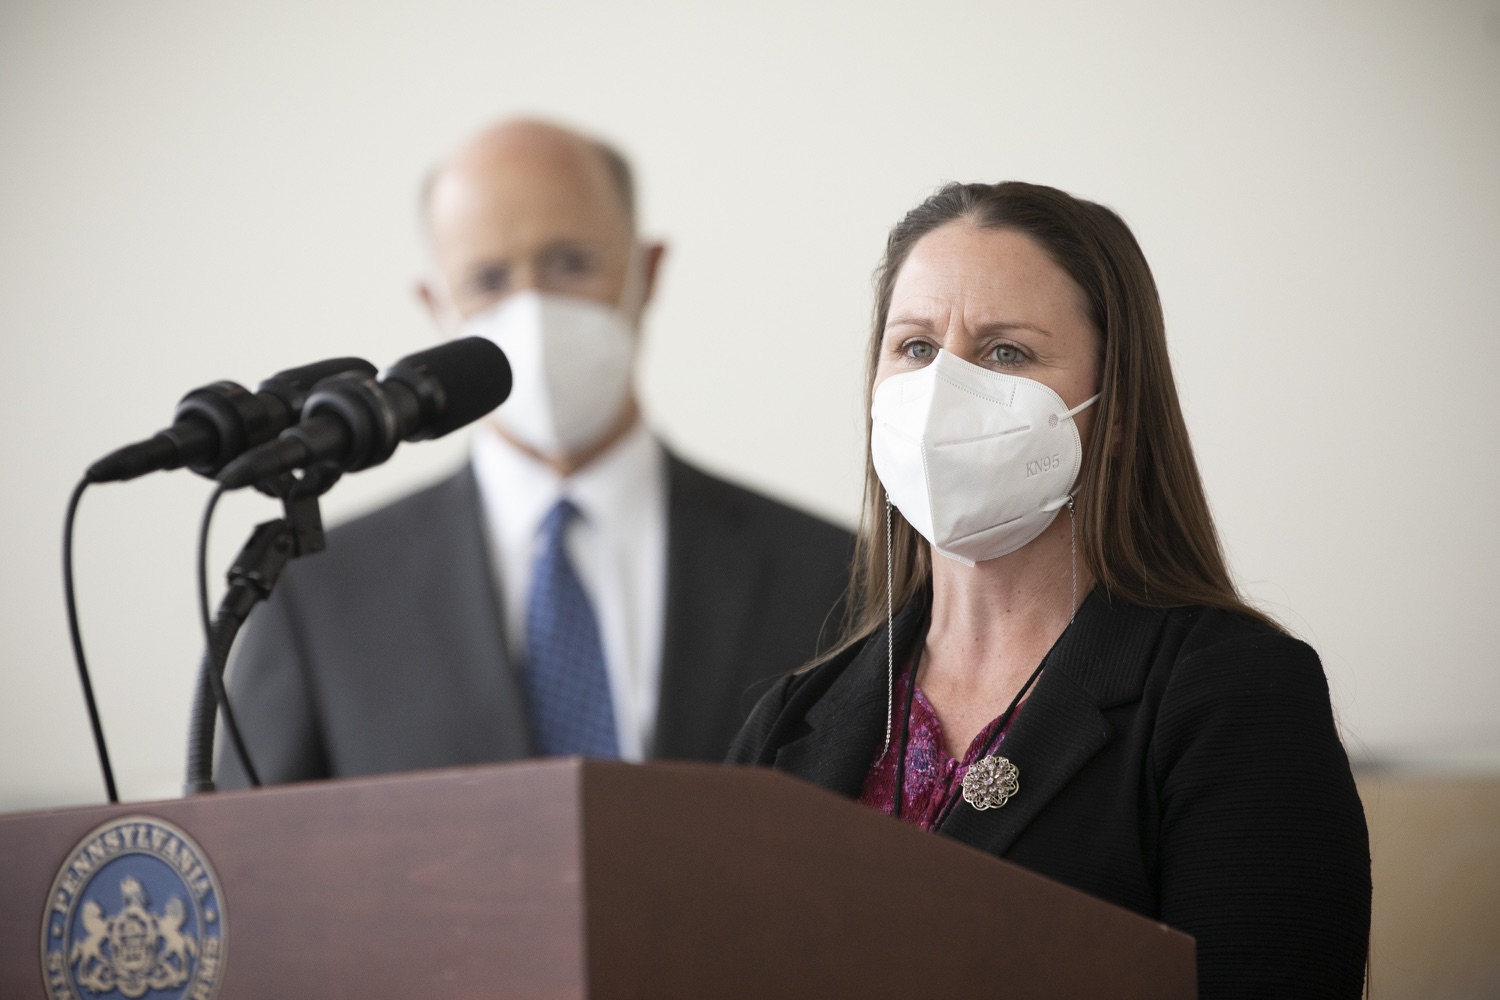 """<a href=""""https://filesource.wostreaming.net/commonwealthofpa/photo/18716_gov_erieVaccination_dz_010.jpg"""" target=""""_blank"""">⇣Download Photo<br></a>Melissa Lyon, Director, Erie County Department of Health speaking with the press.  Governor Tom Wolf toured a COVID-19 vaccine clinic at the Bayfront Convention Center in Erie that is operated by the Erie County Department of Health and the Lake Erie College of Osteopathic Medicine (LECOM) Institute for Successful Aging. The governor discussed the states vaccination effort and reminded all Pennsylvanians the vaccine is available, free and safe.  Erie, PA  April 28, 2021"""